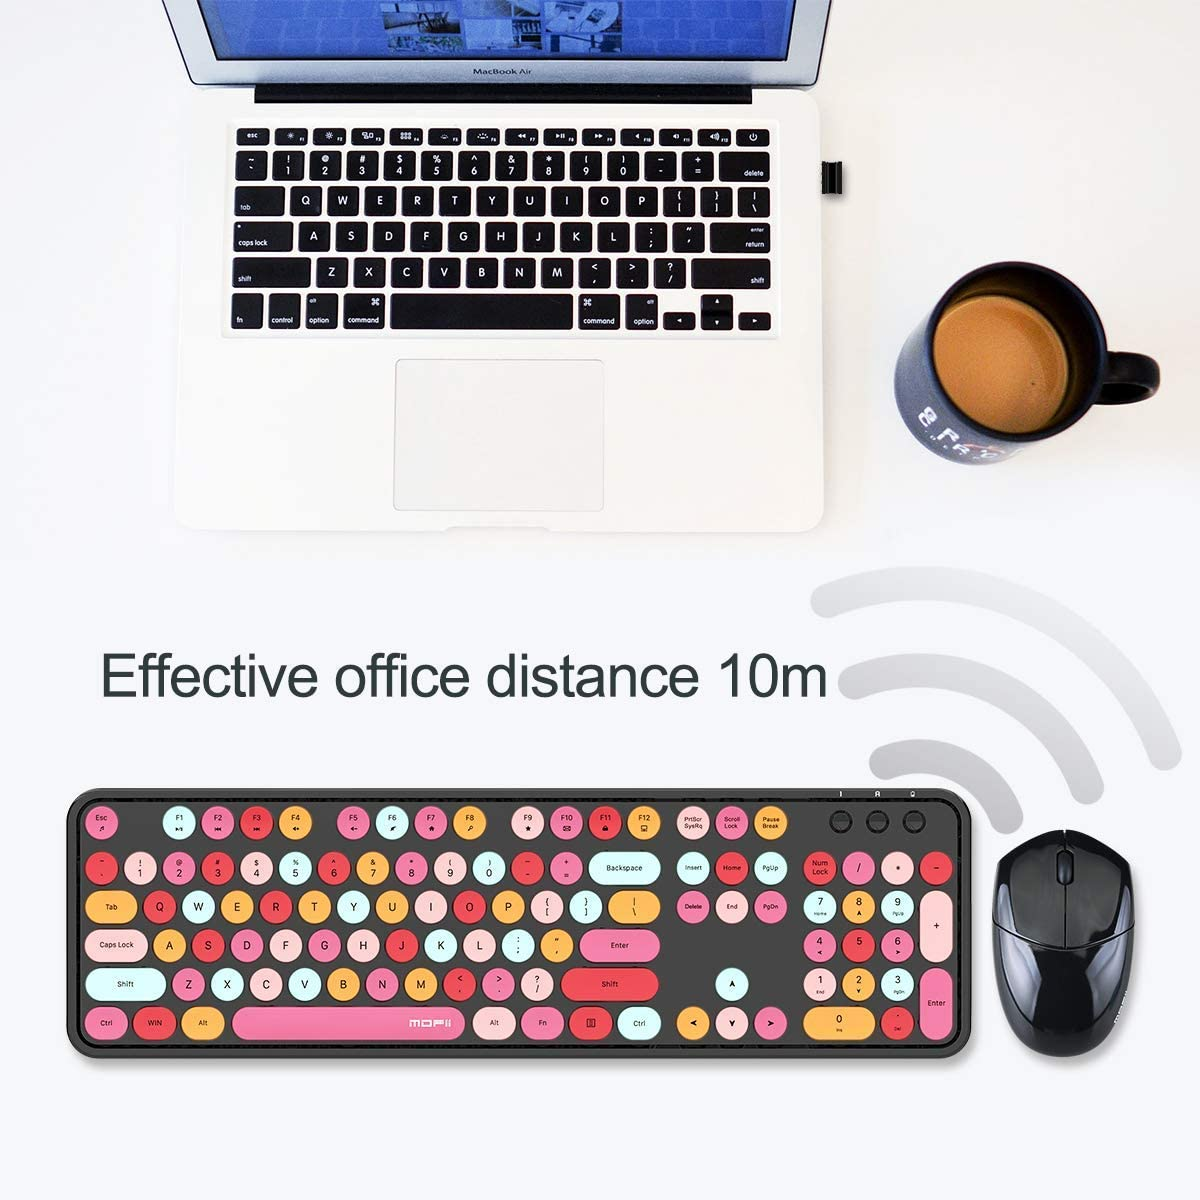 Wireless Keyboard and Mouse Combo 2.4GHz Retro Full Size with Number Pad /& Slim Wireless Mouse for Computer PC Laptop Notebook Mac Windows XP//7//8//10 Black /& Lipstick Colors Cute Wireless Keyboard